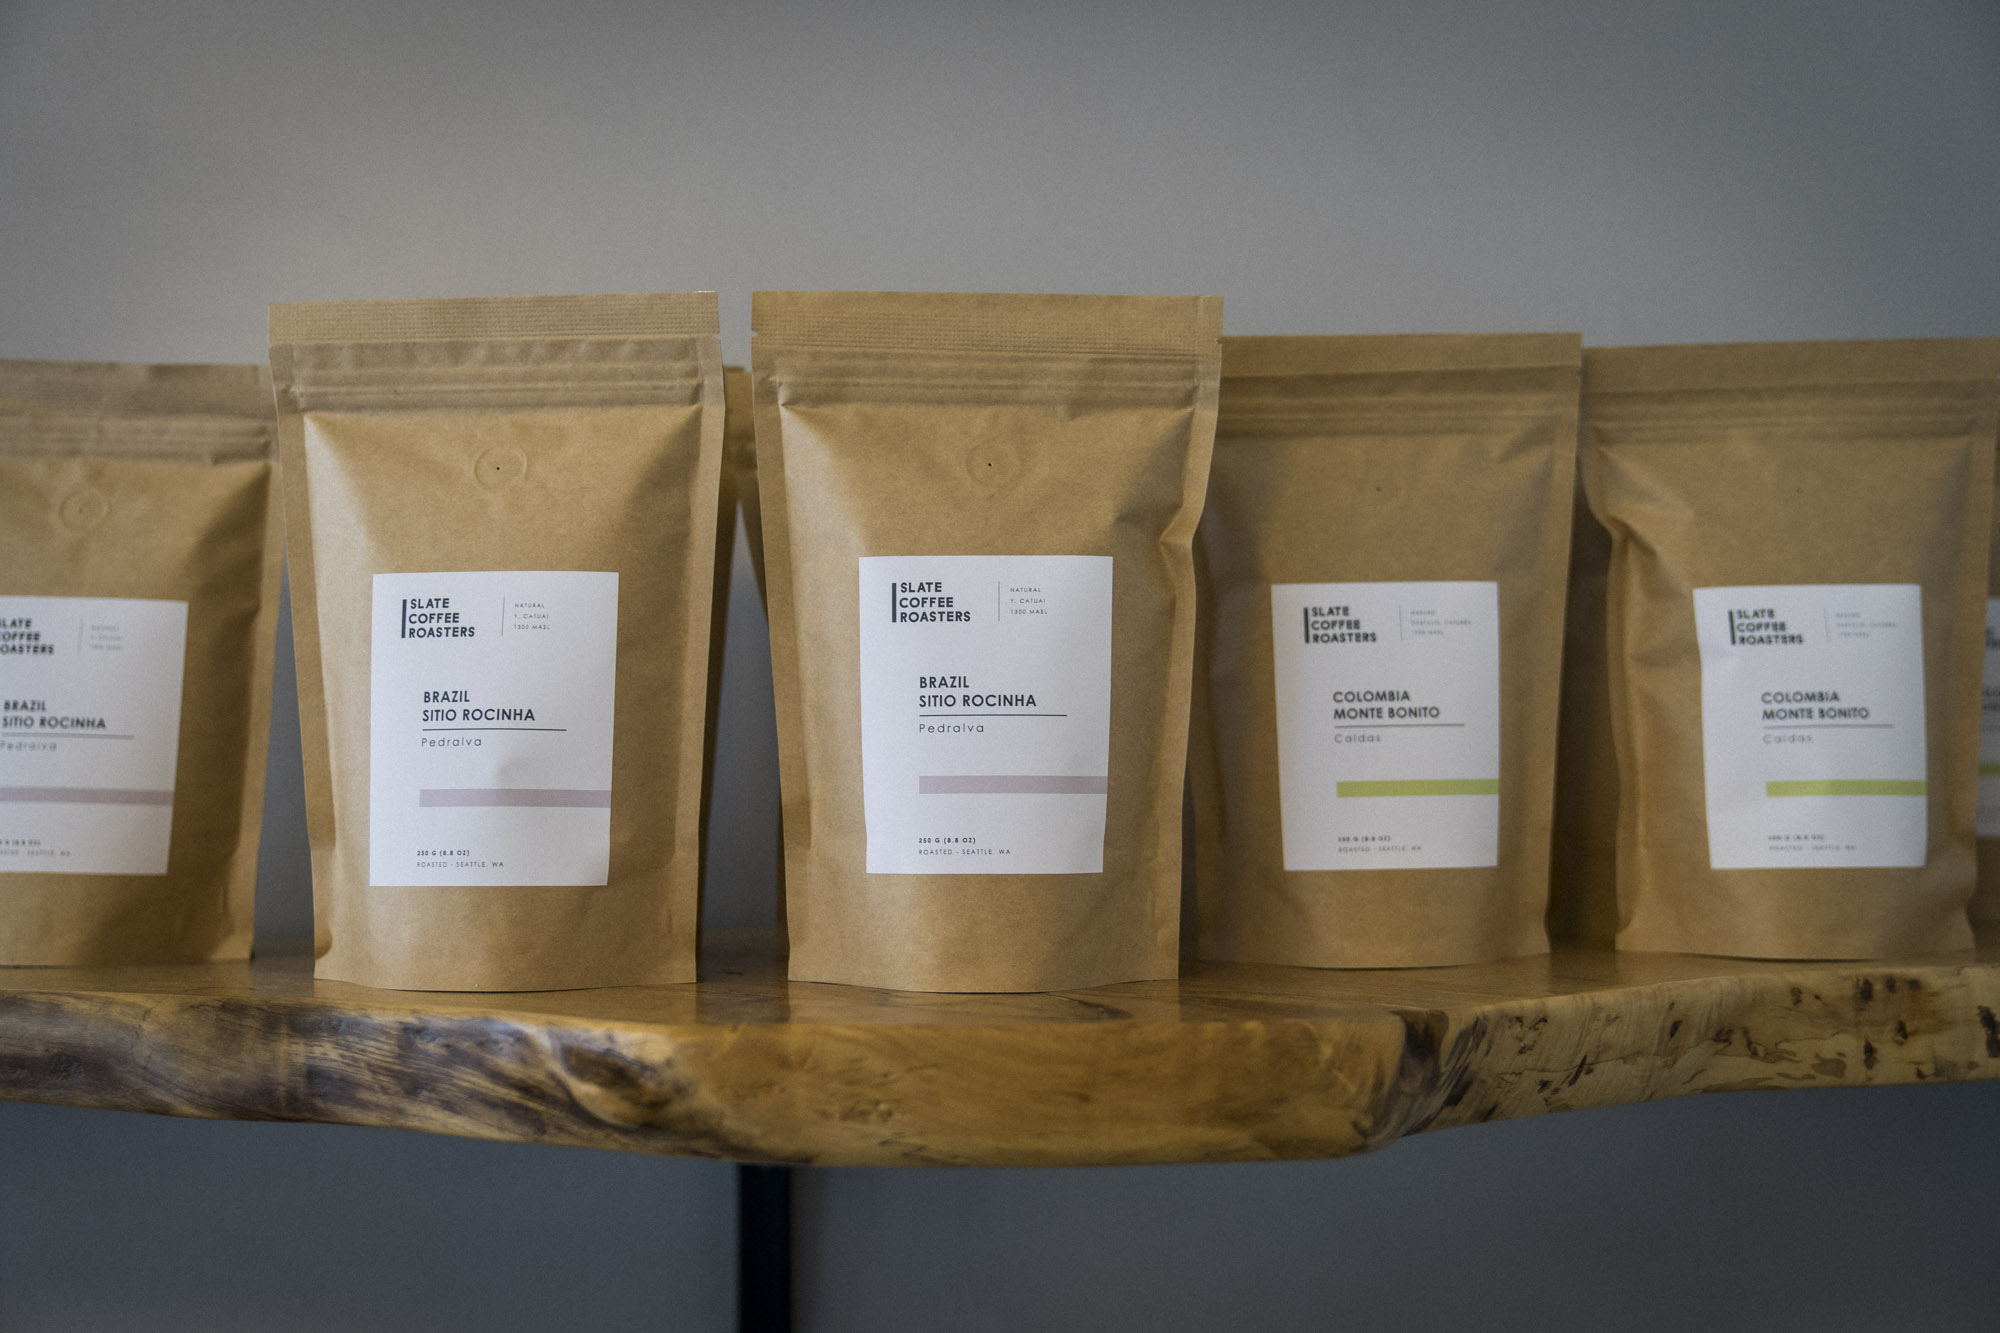 Slate Coffee Roasters packaging on a wood shelf against a wall.